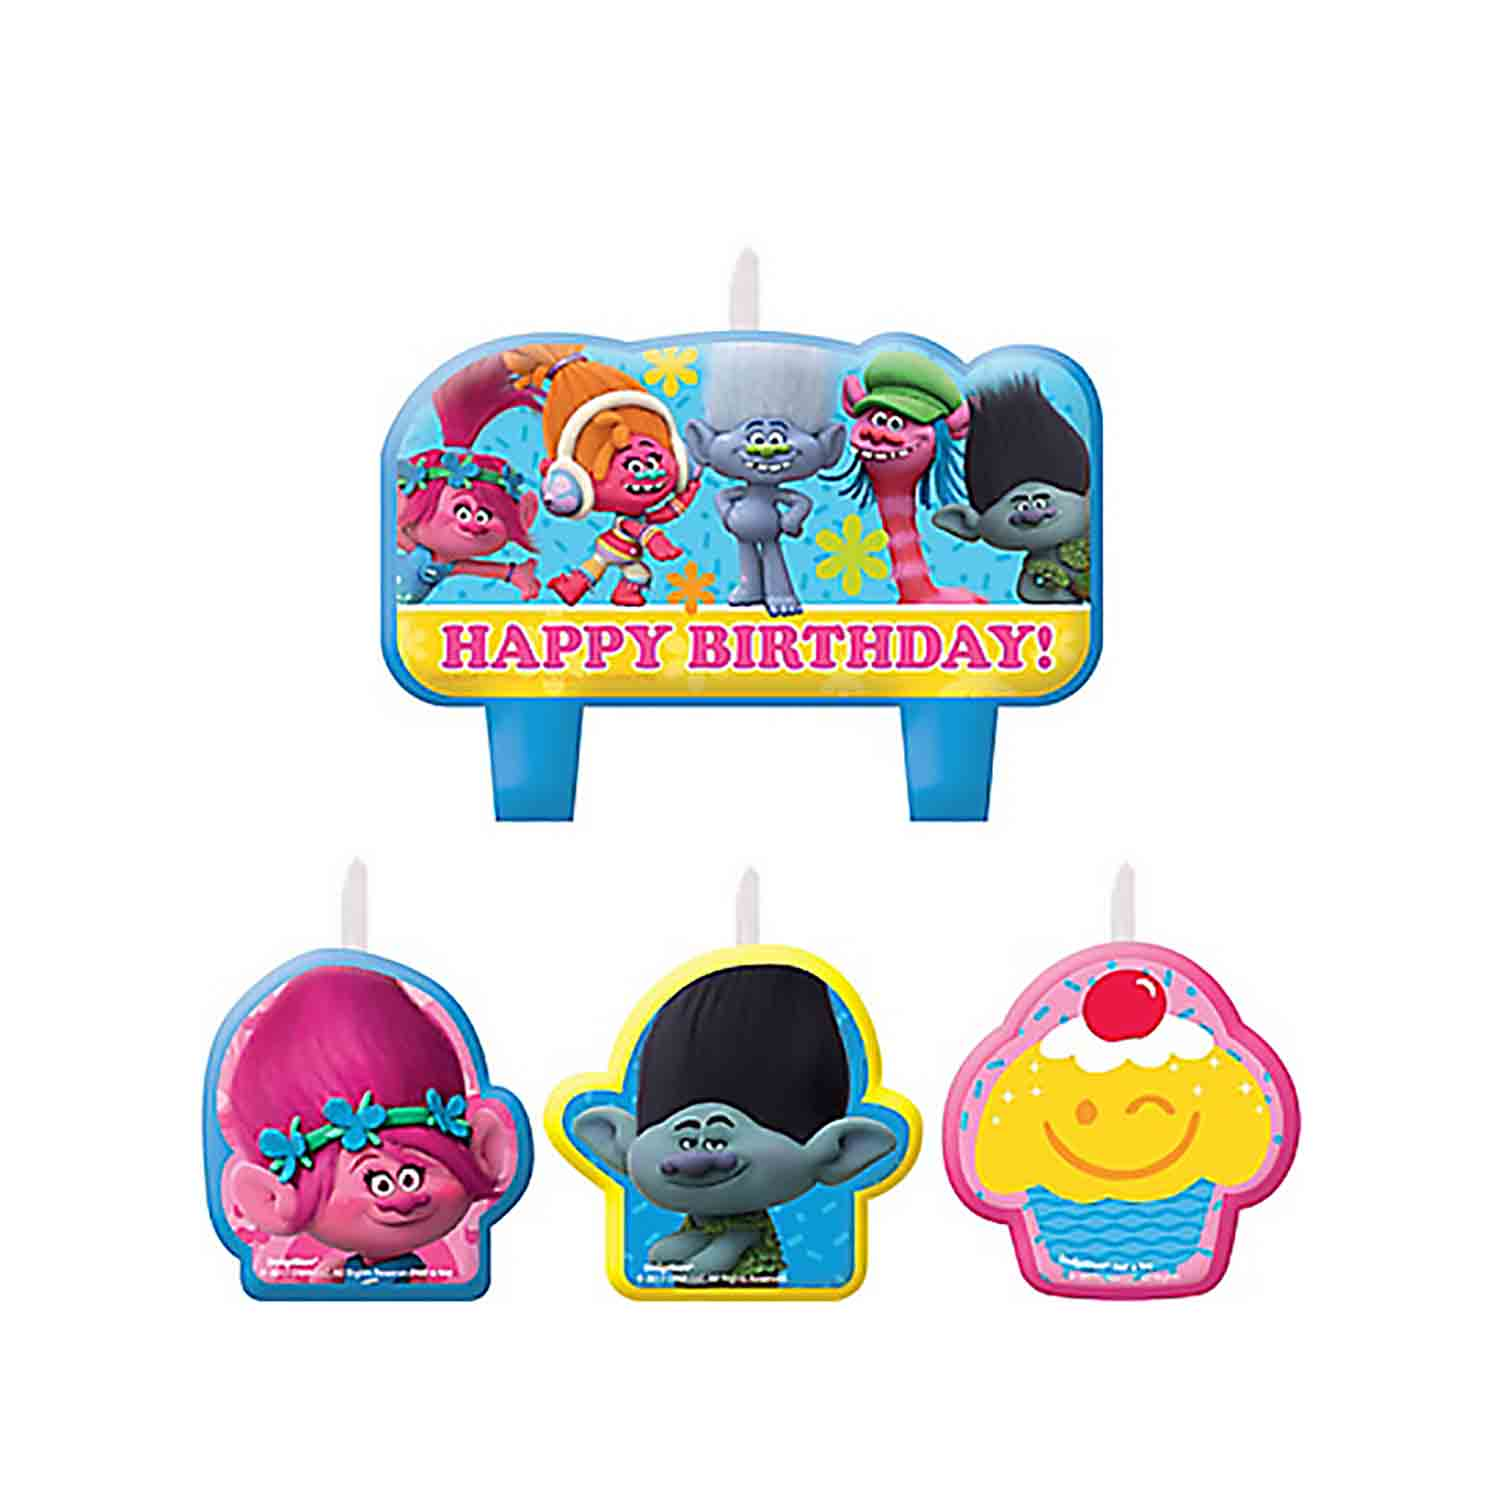 Trolls Birthday Candle Set